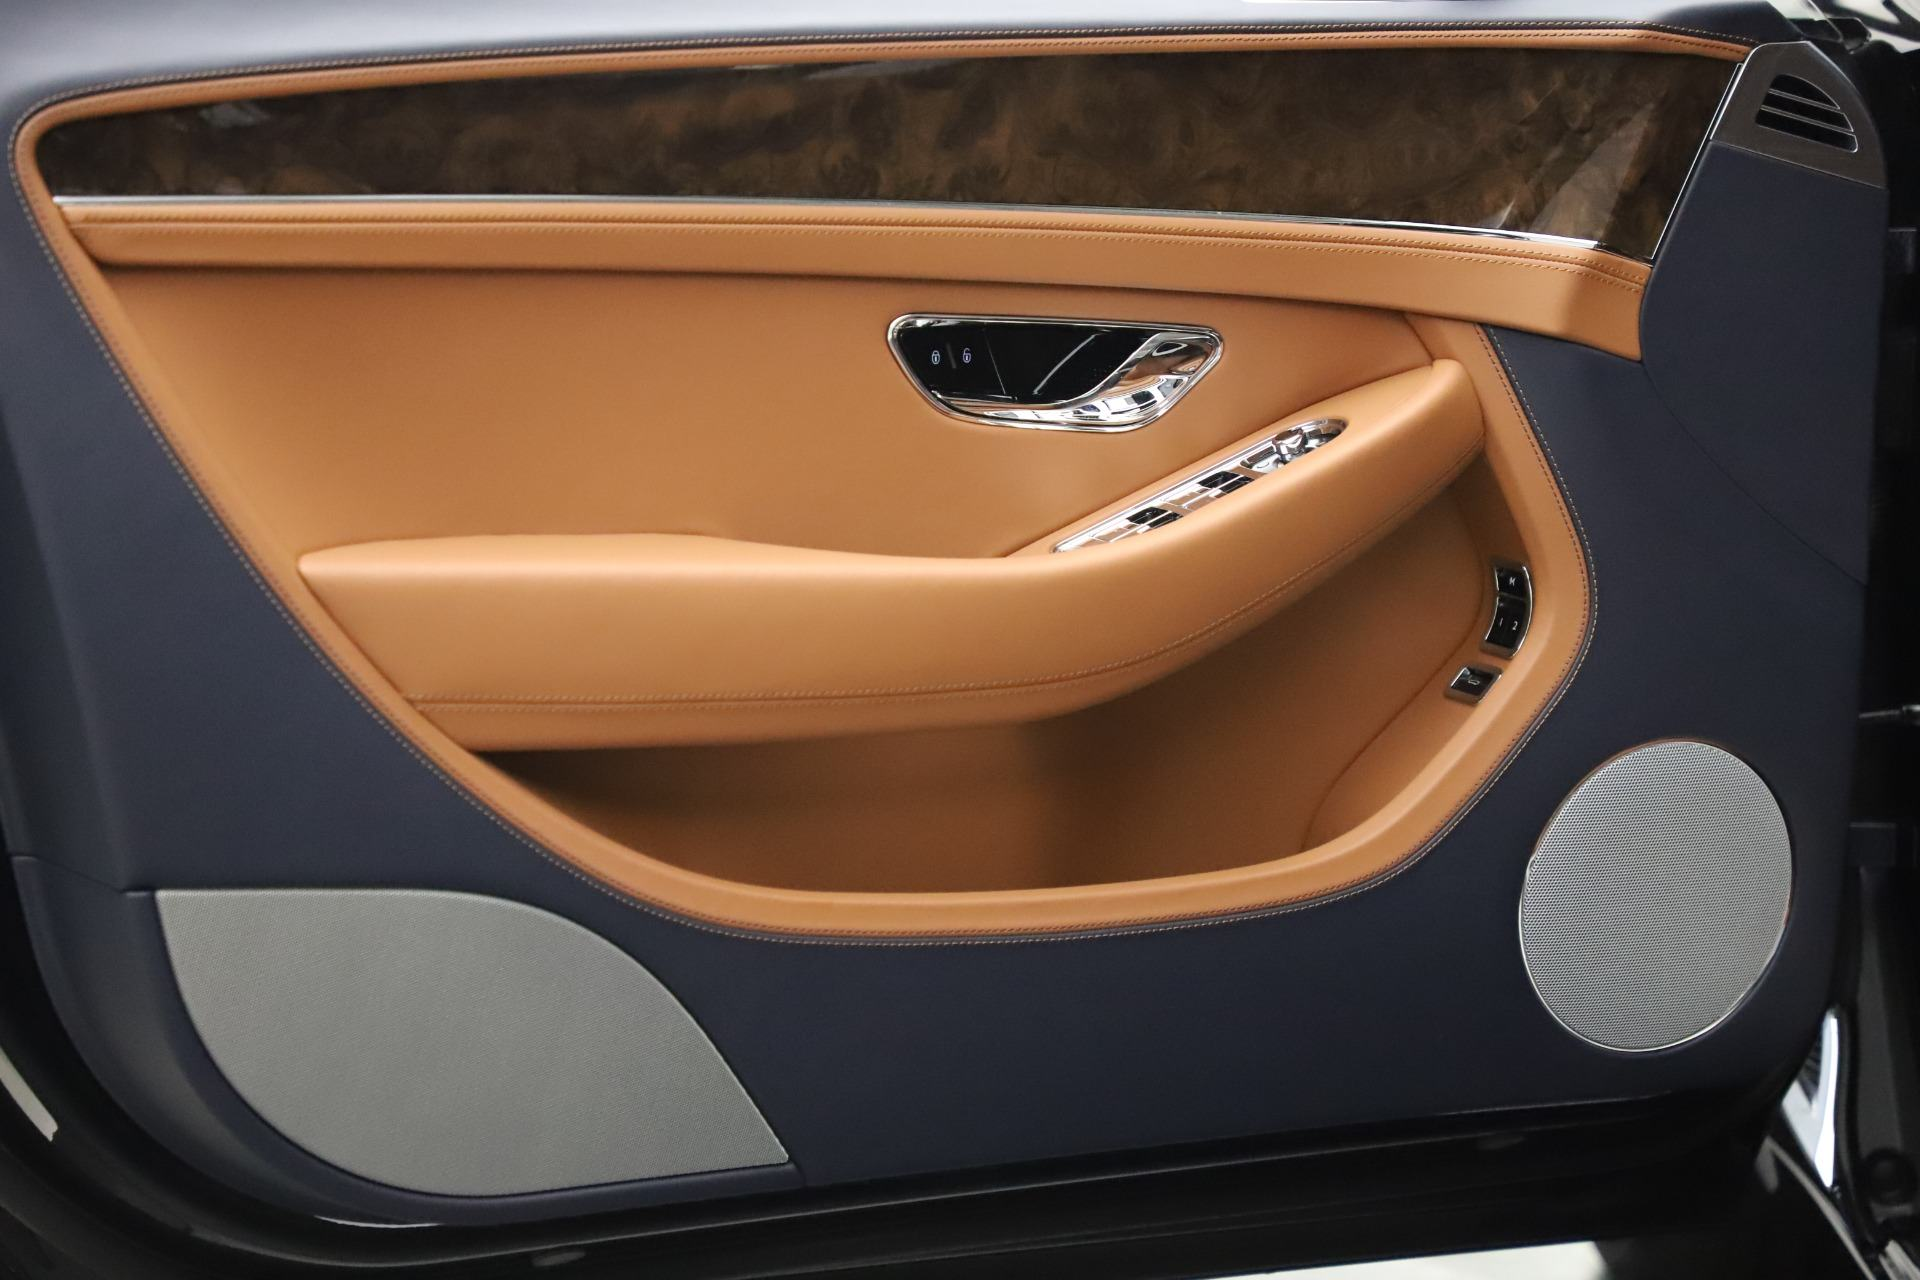 Bentley-Continental-GT-W12-Coupe-2020-2021-Muaxegiatot-vn-13